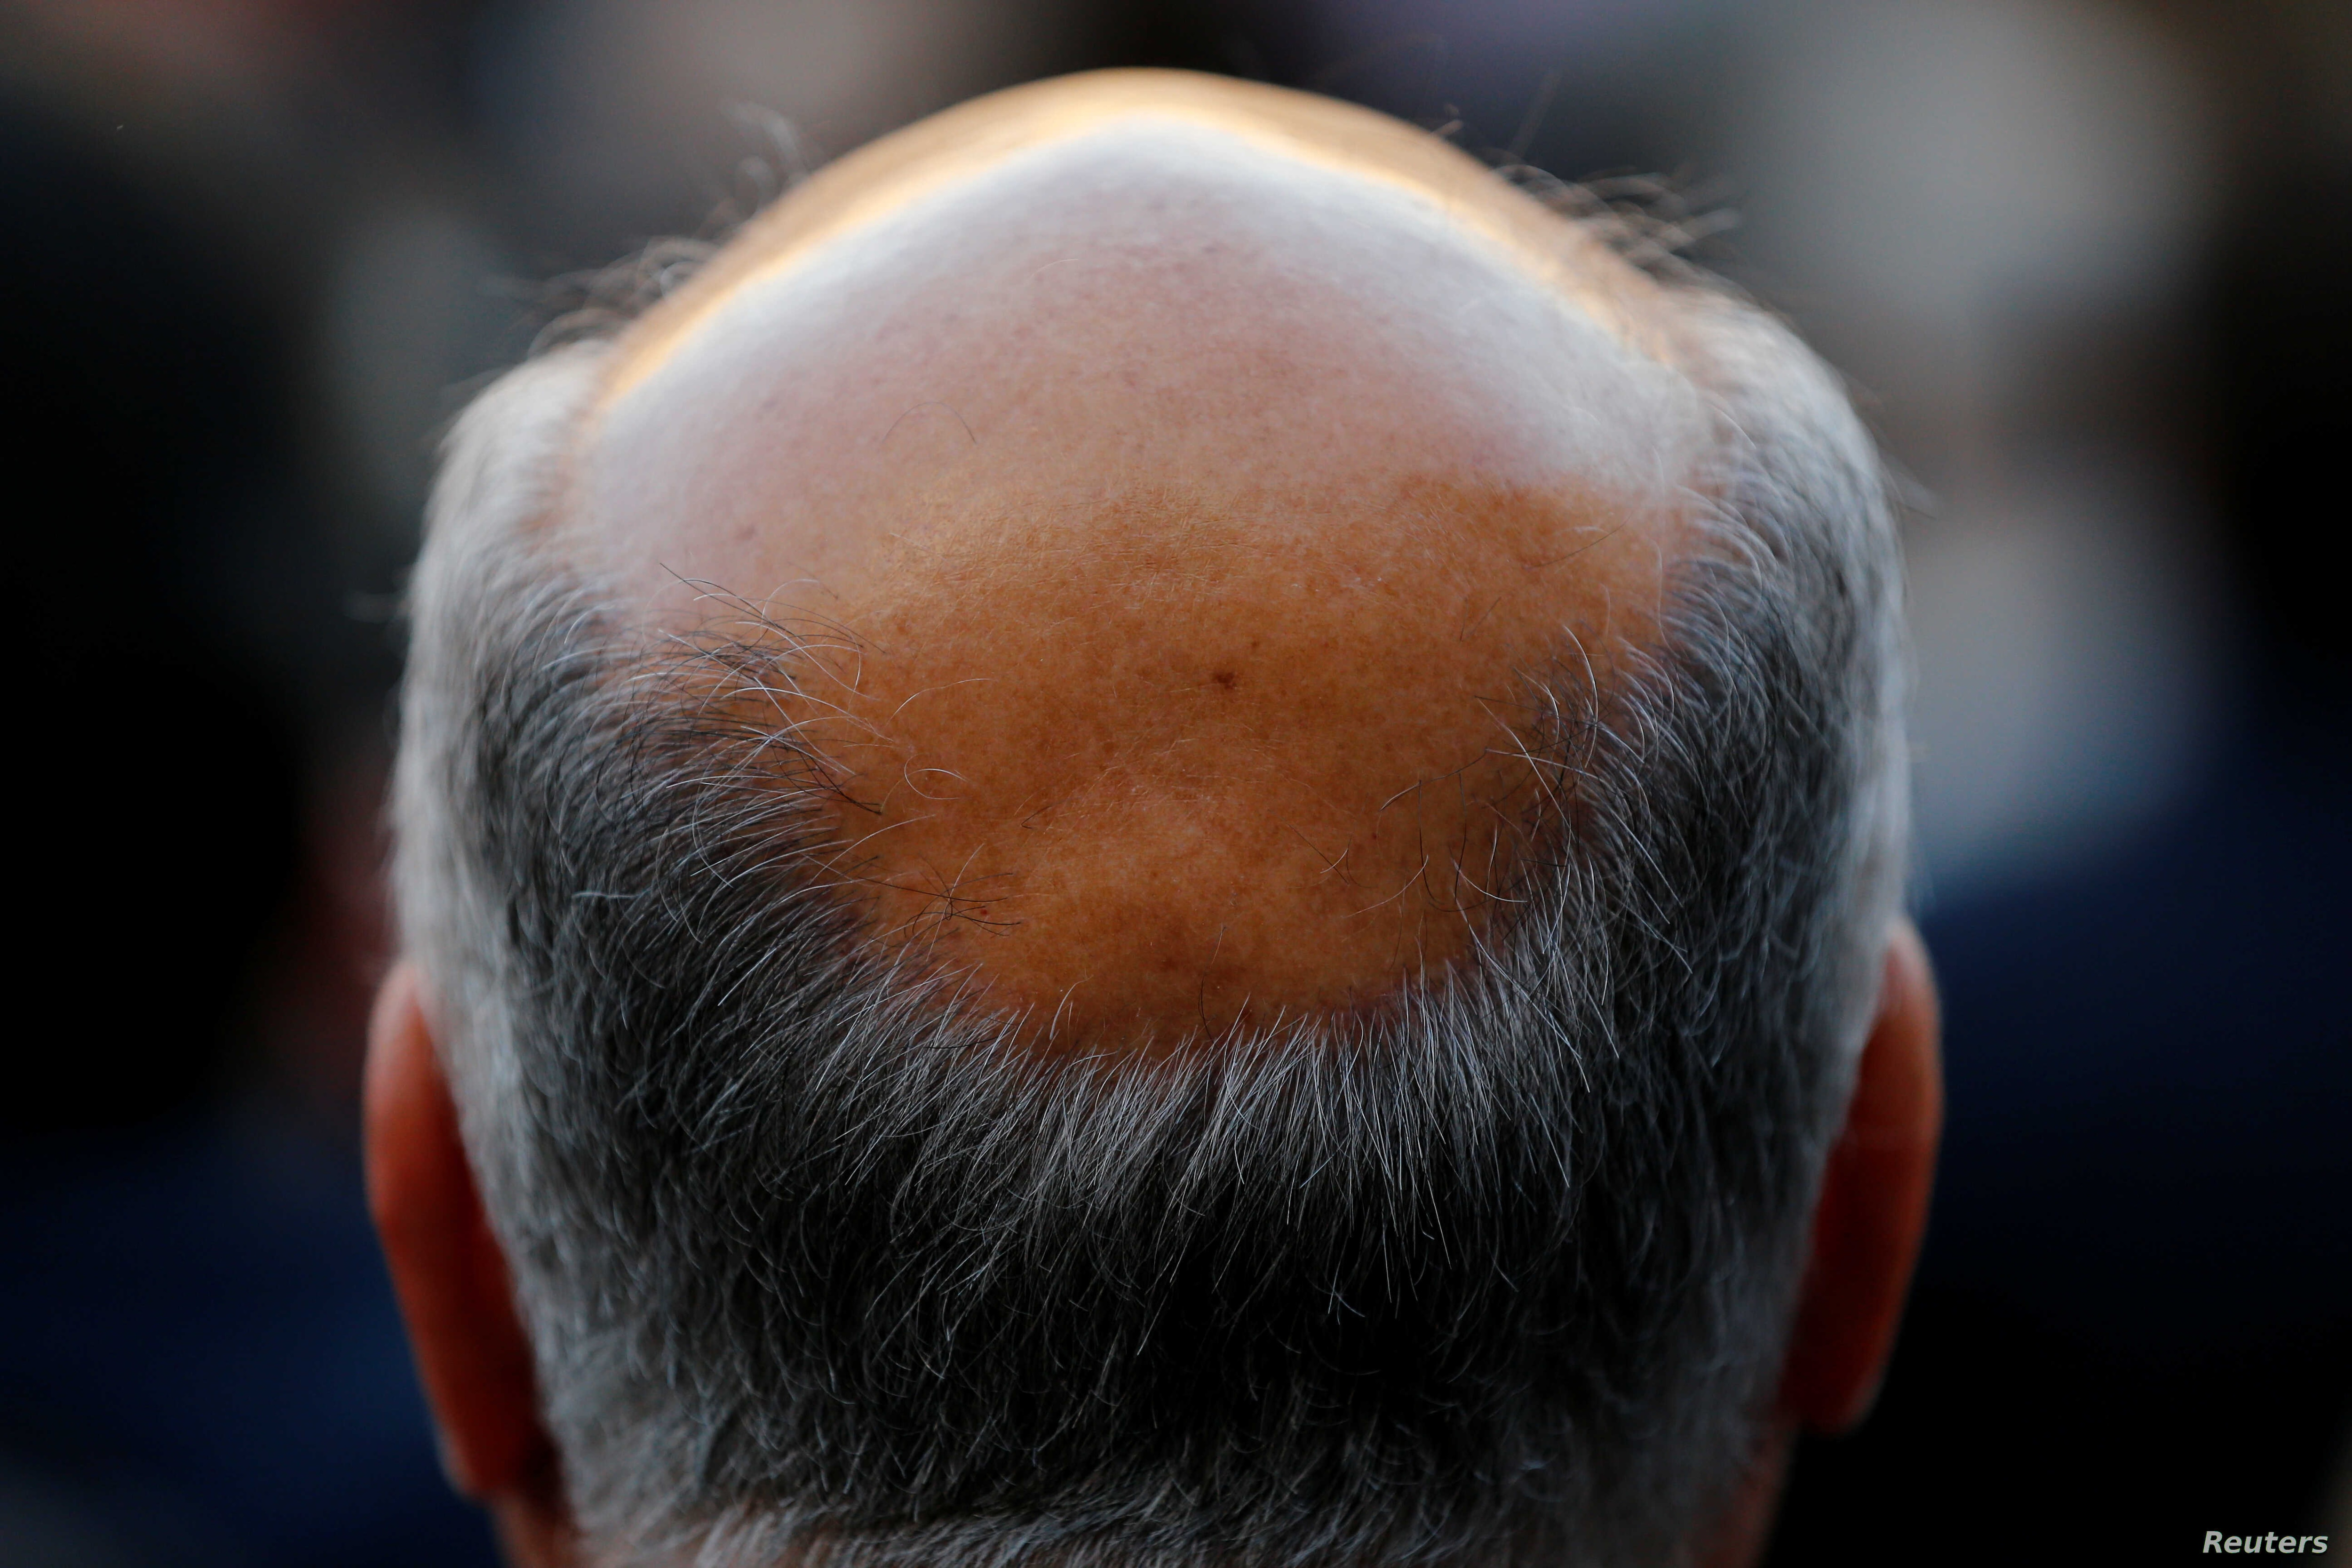 A new study has found that males of short stature are at increased risk of losing their hair prematurely, in addition to a number of other health conditions.